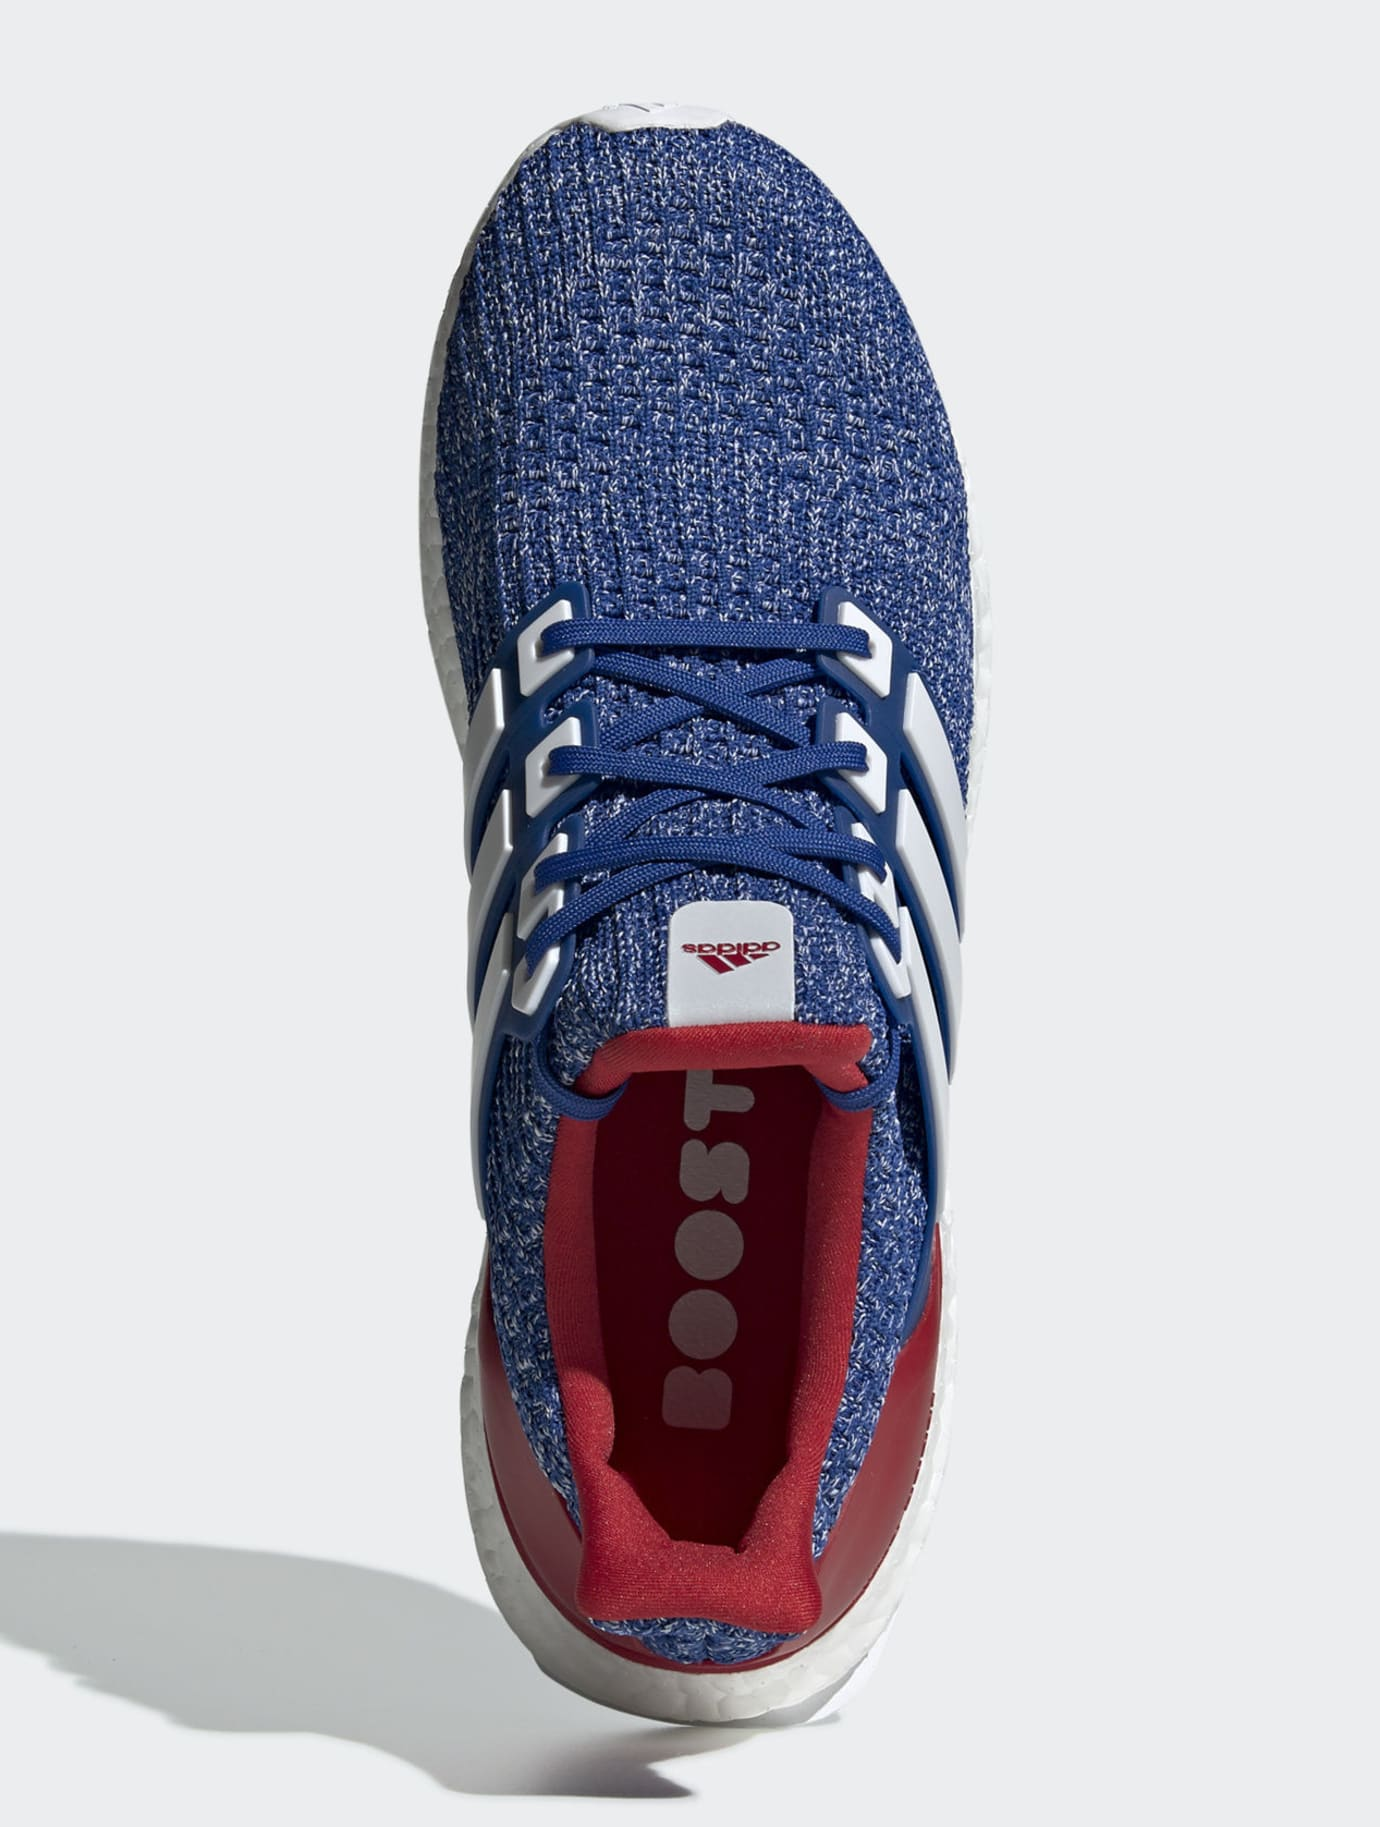 Adidas Ultra Boost 'USA' EE3704 Top